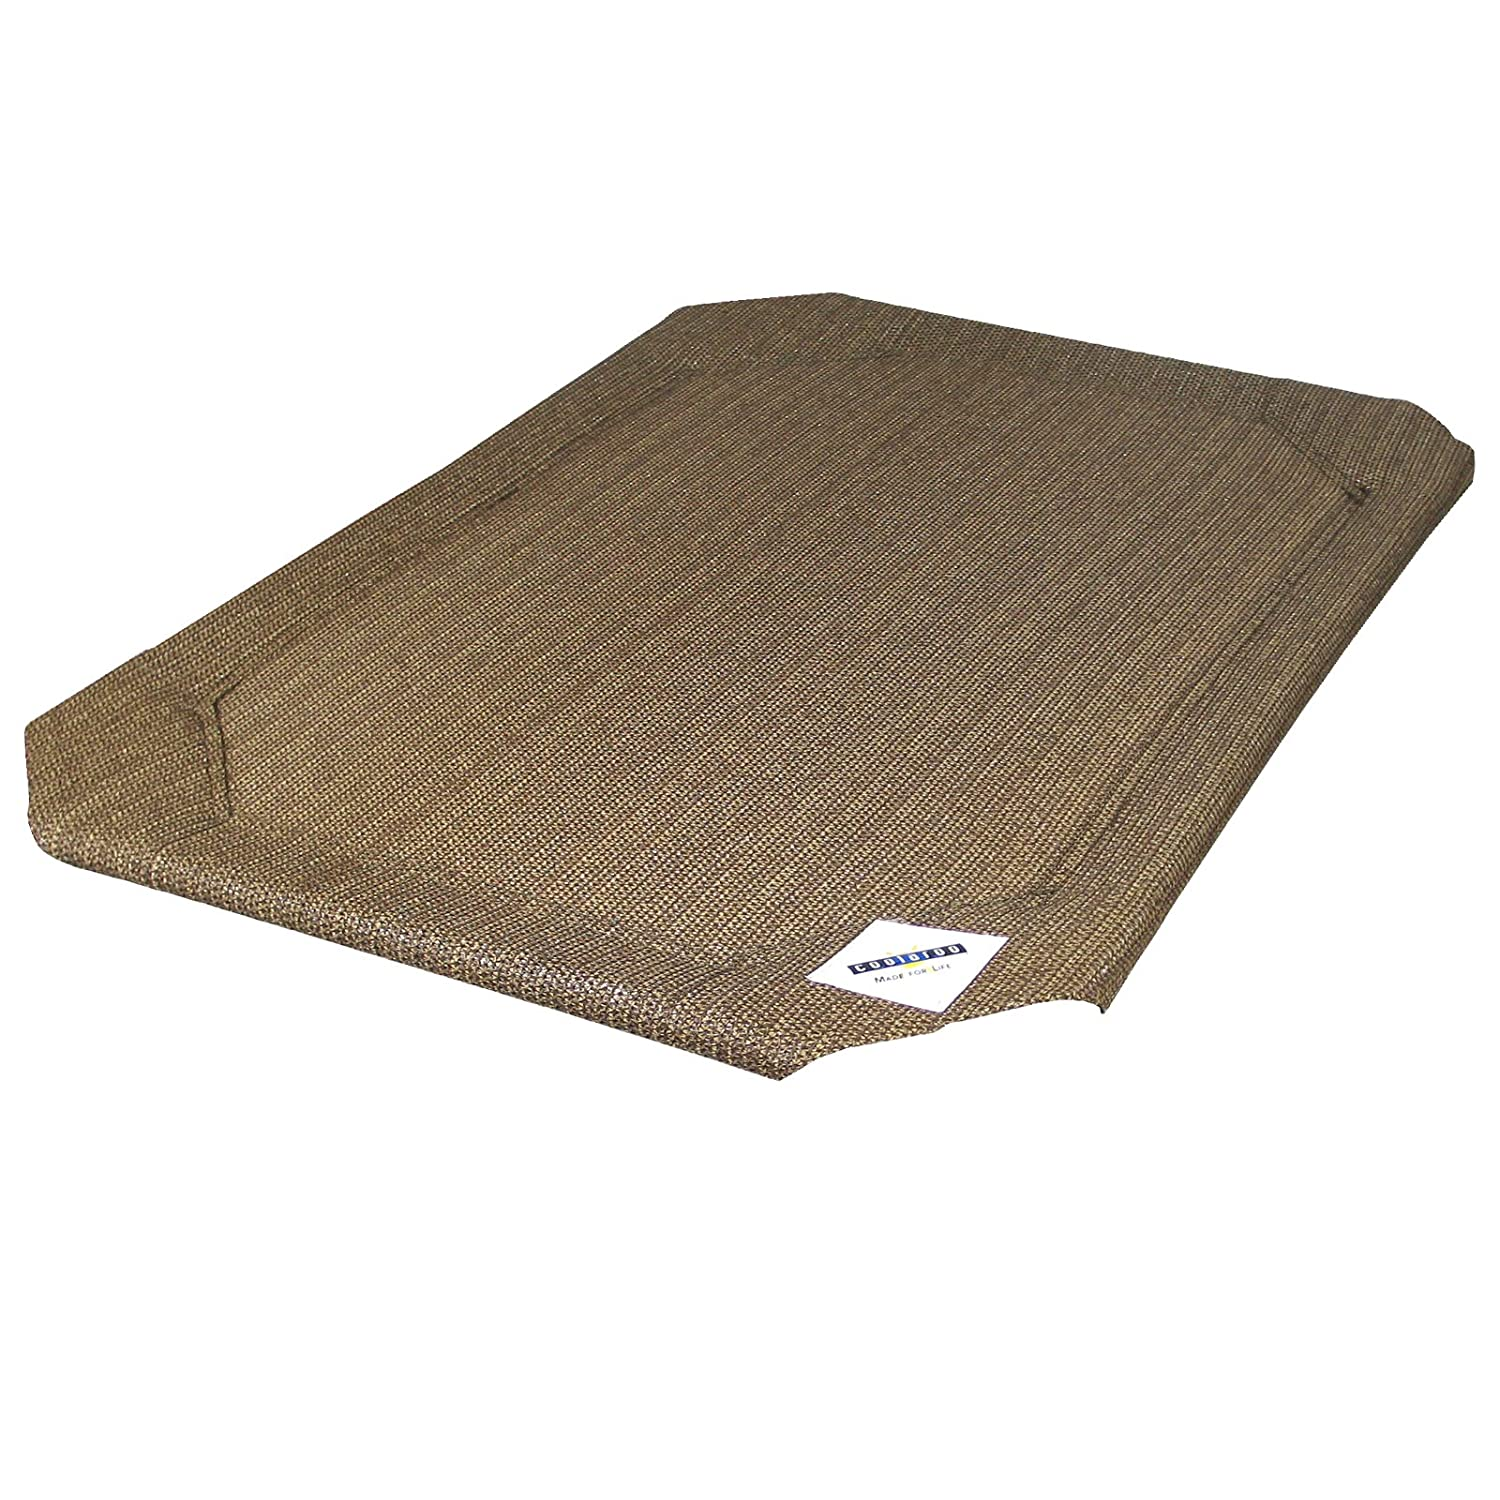 Coolaroo Elevated Pet Bed Replacement Cover Small Nutmeg